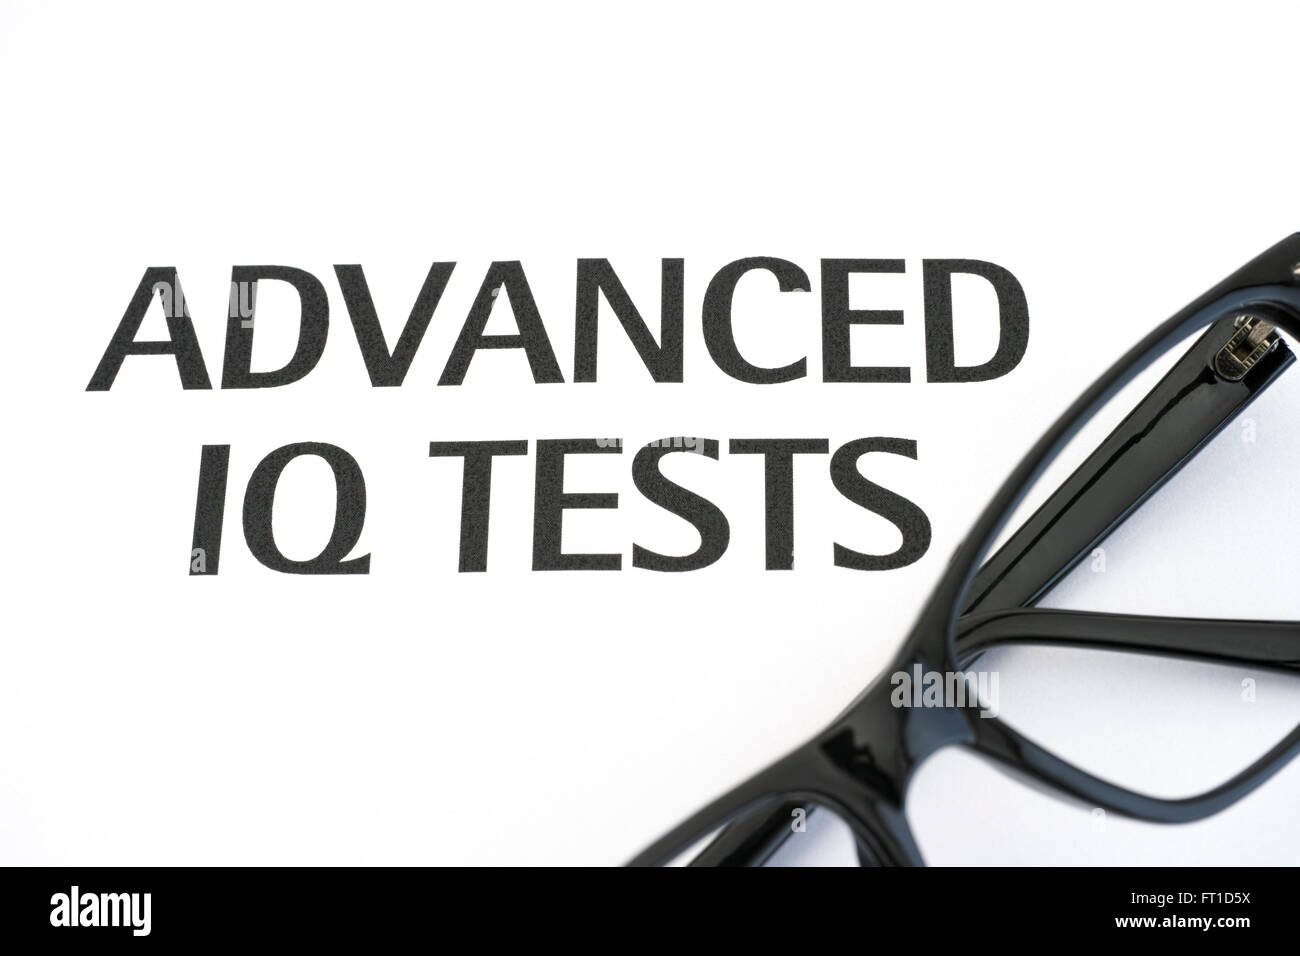 Advanced IQ tests with glasses - Stock Image